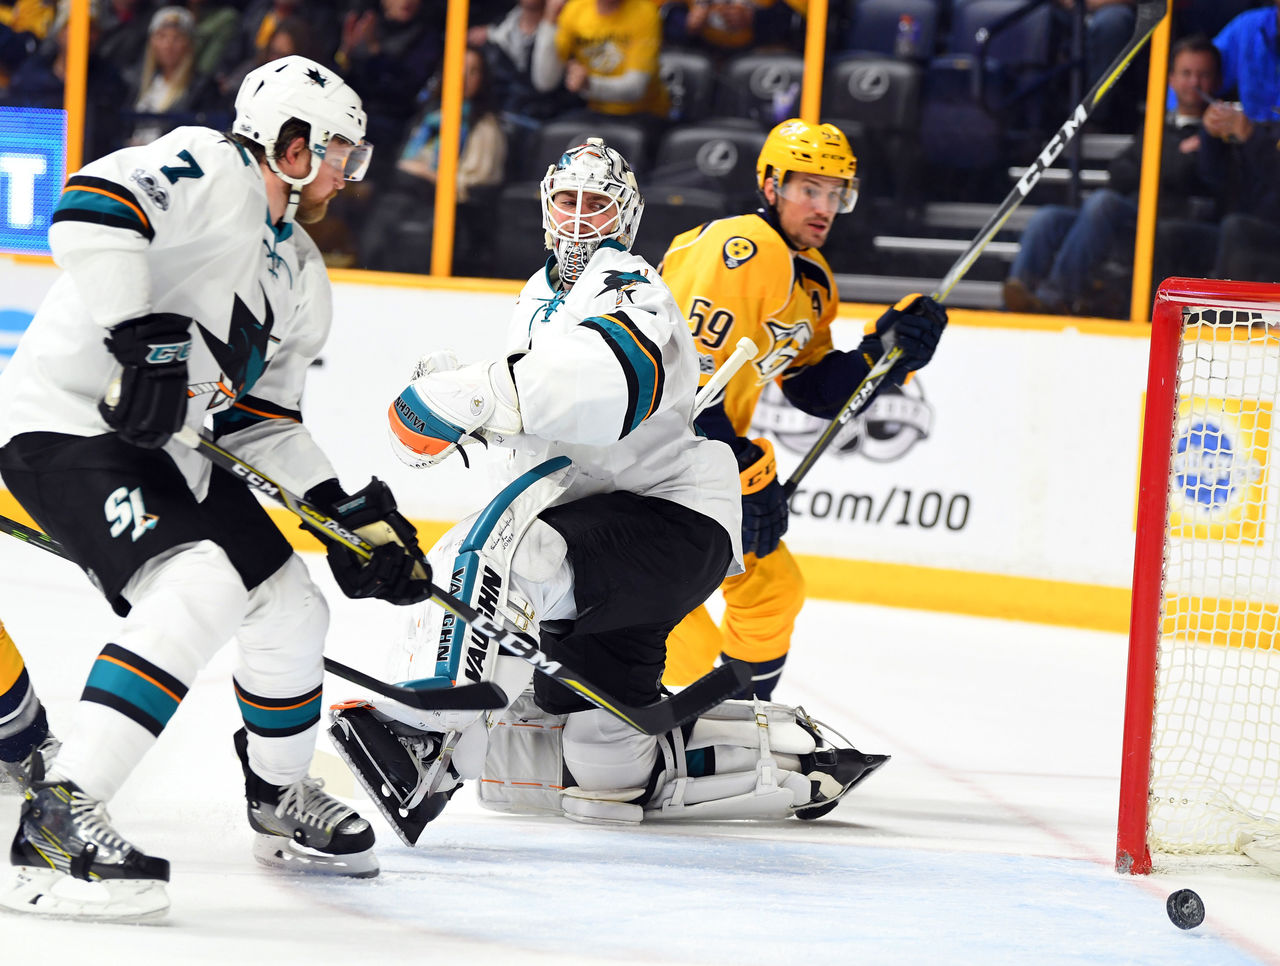 Cropped_2017-03-26t030637z_1423928549_nocid_rtrmadp_3_nhl-san-jose-sharks-at-nashville-predators